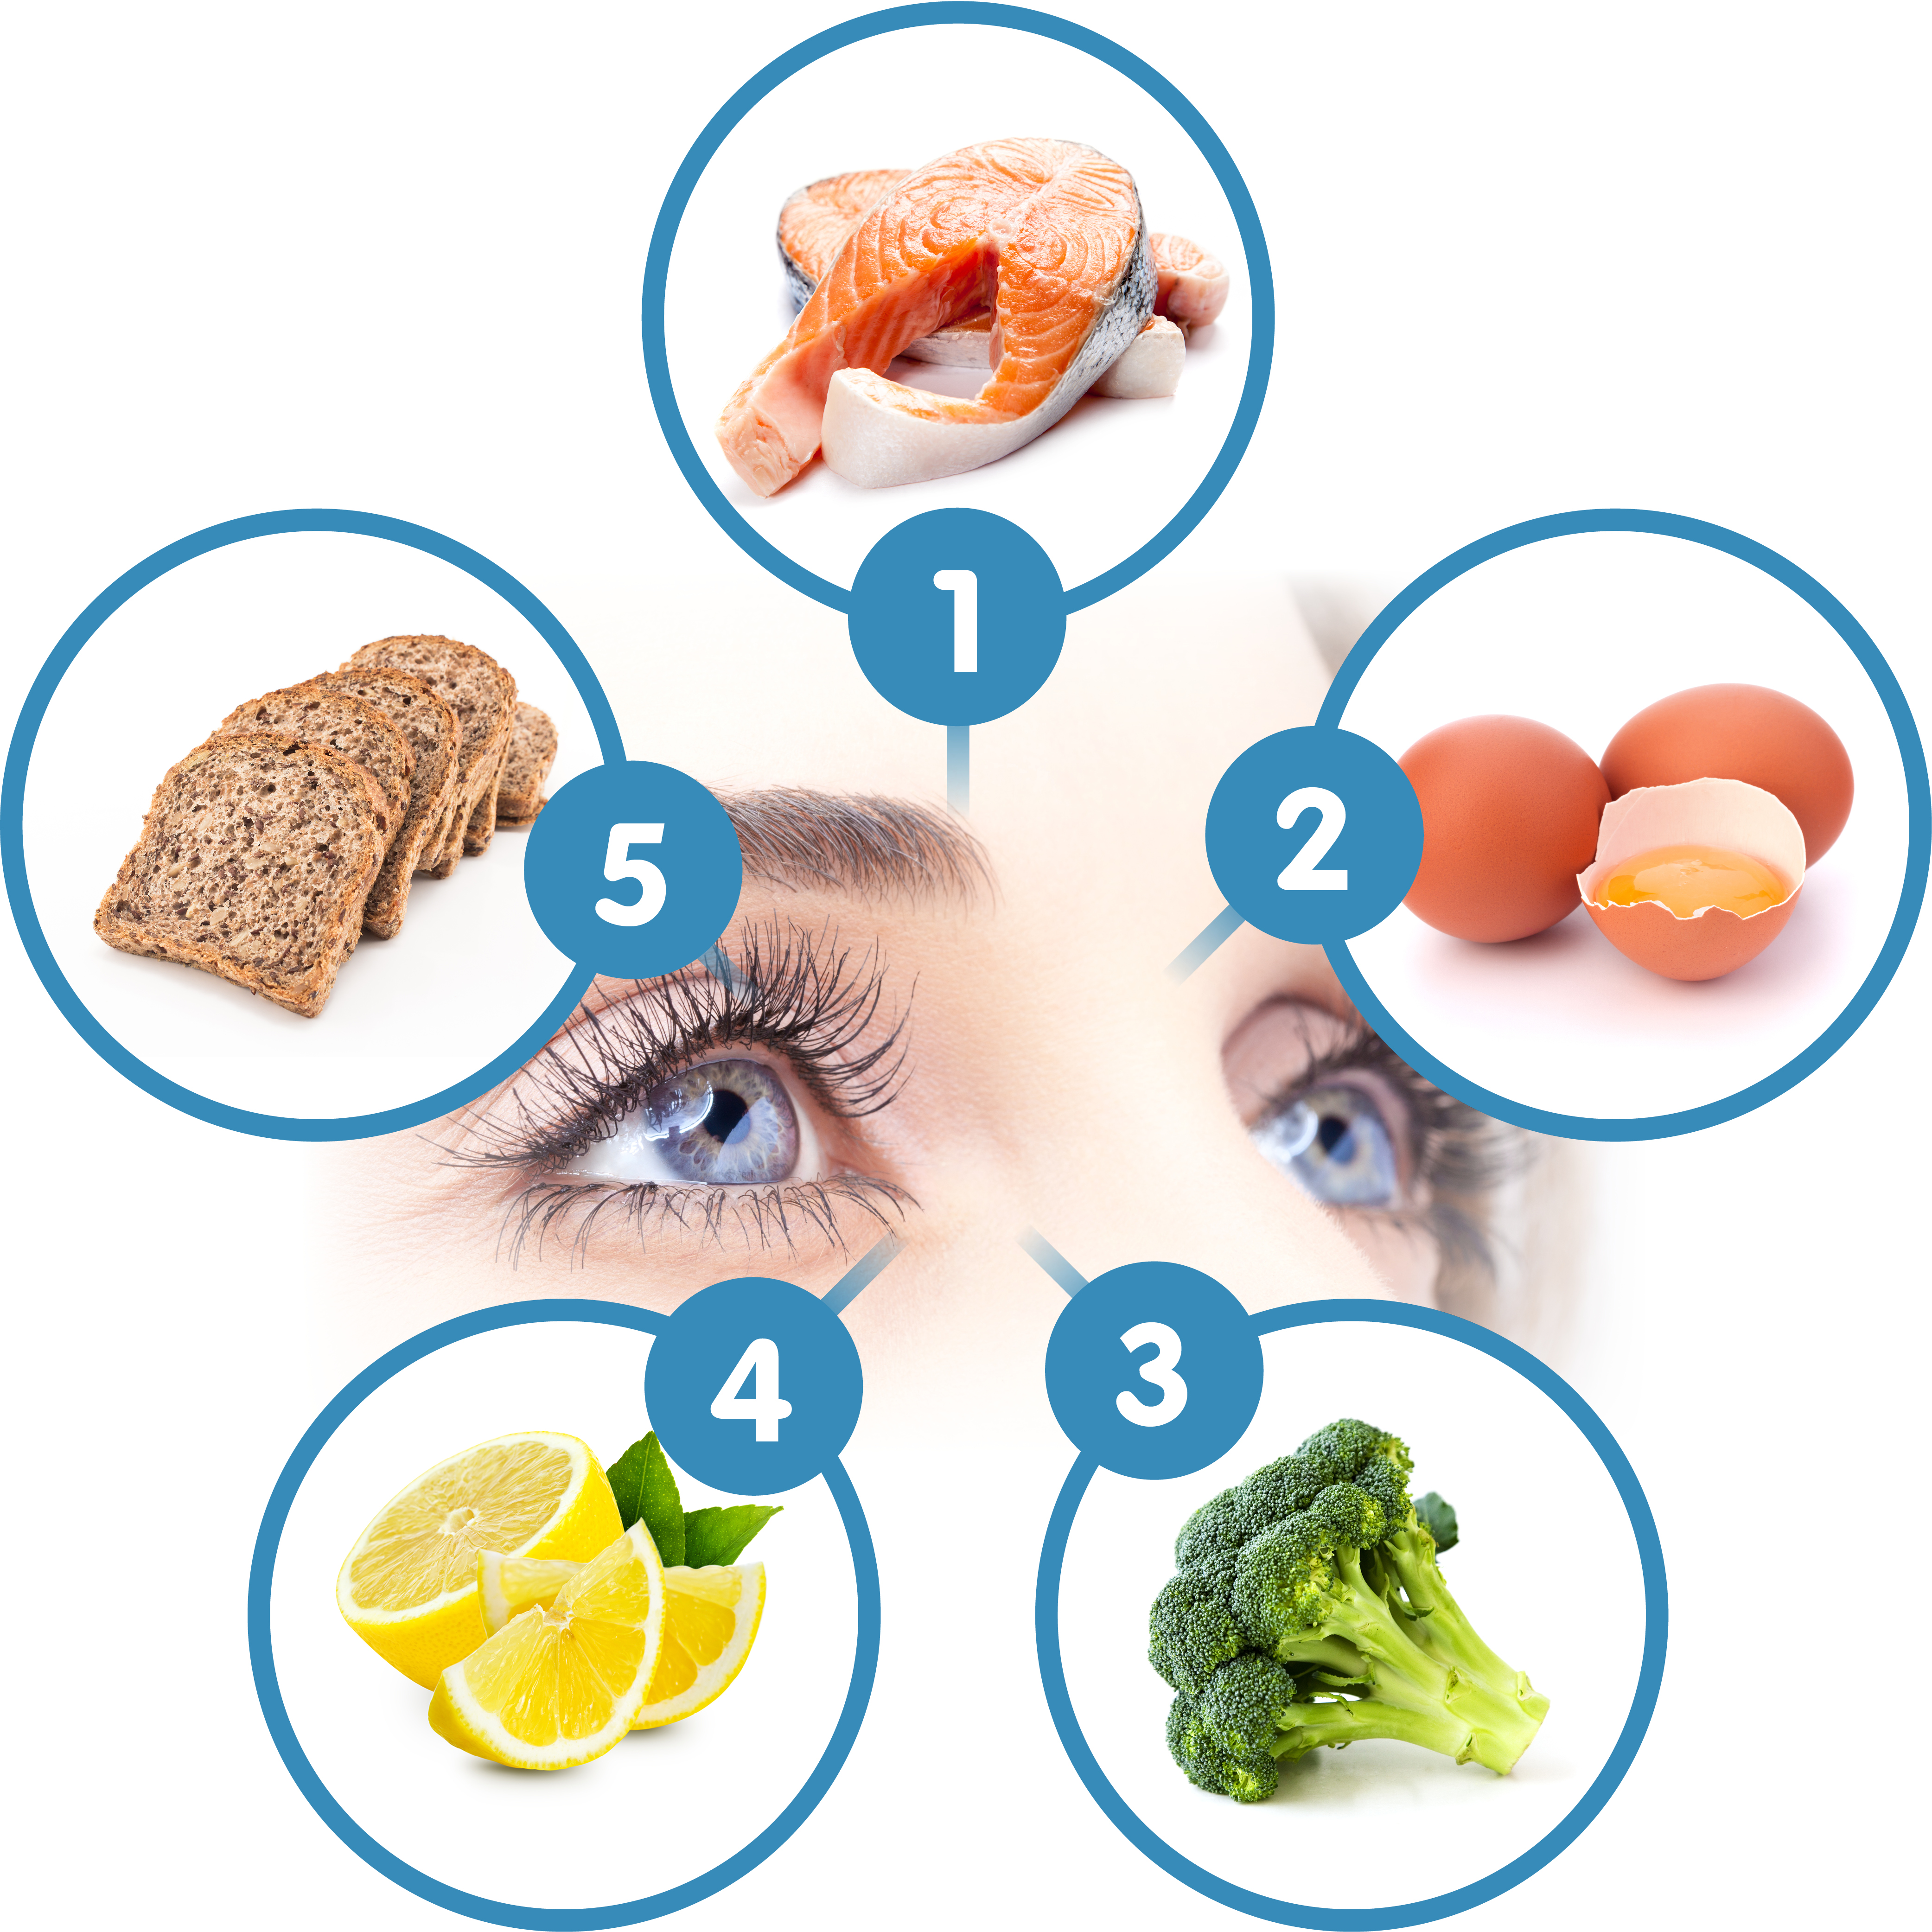 5 foods to help your sight